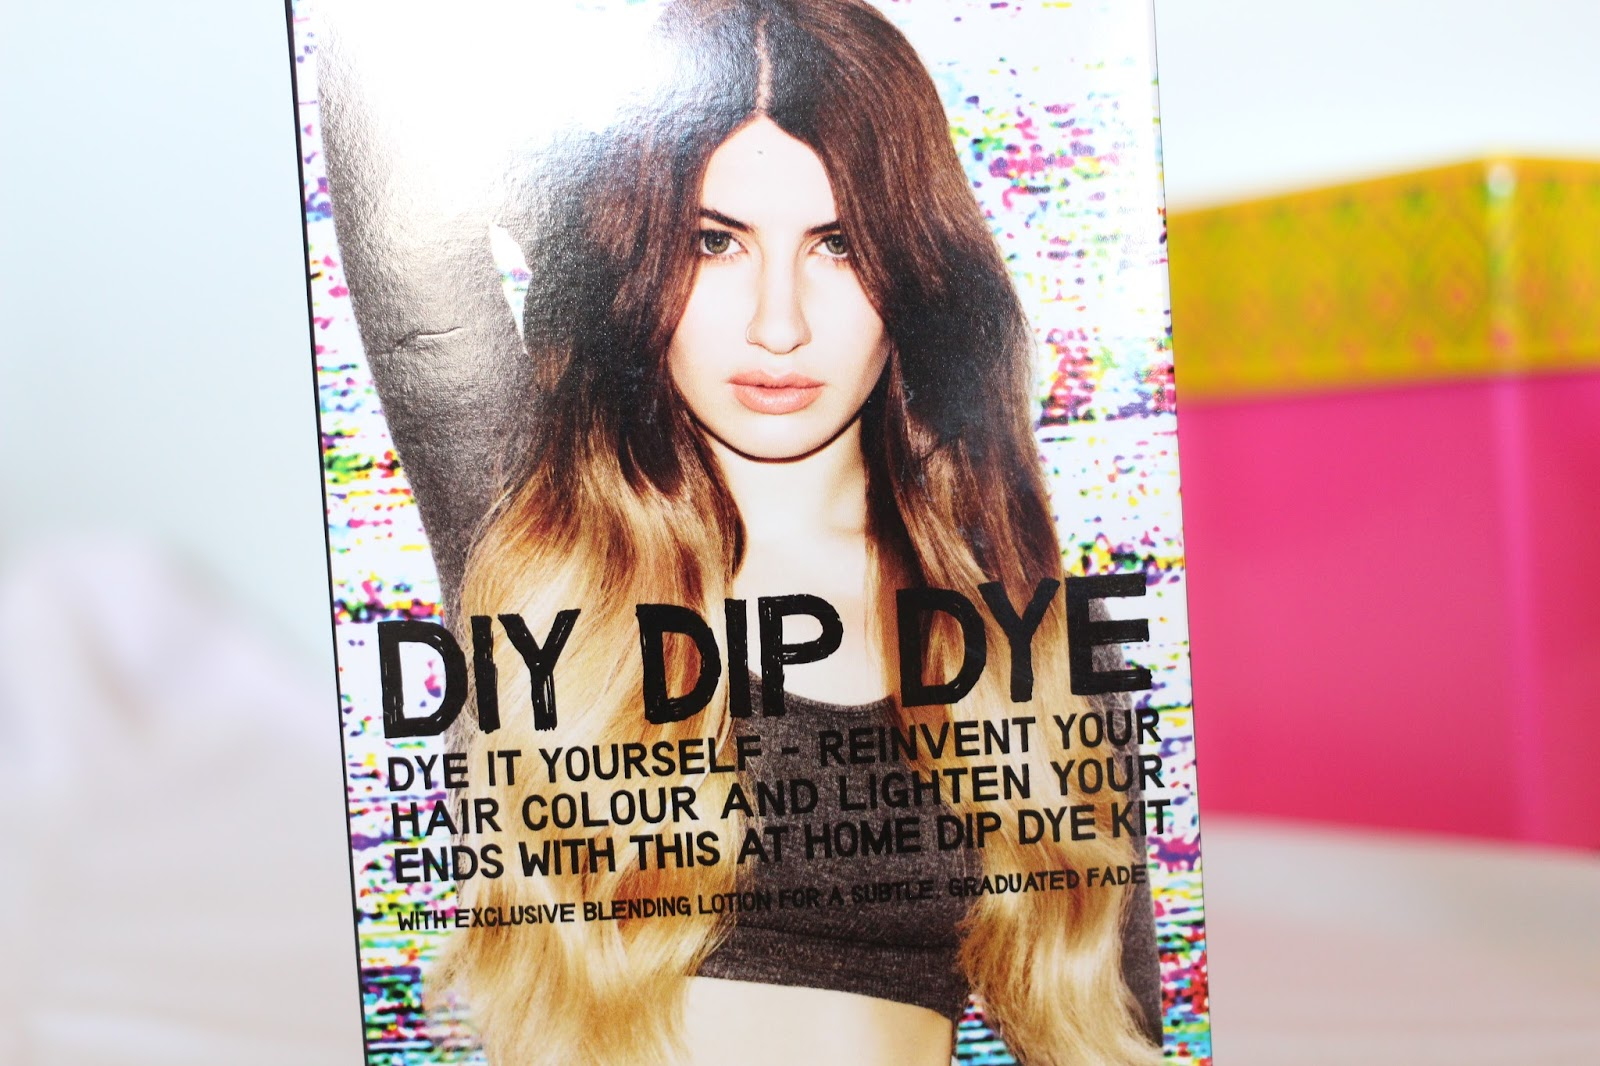 Ombre hair bleach london diy dip dye kit review beauty and the bird bleach london diy dip dye solutioingenieria Image collections